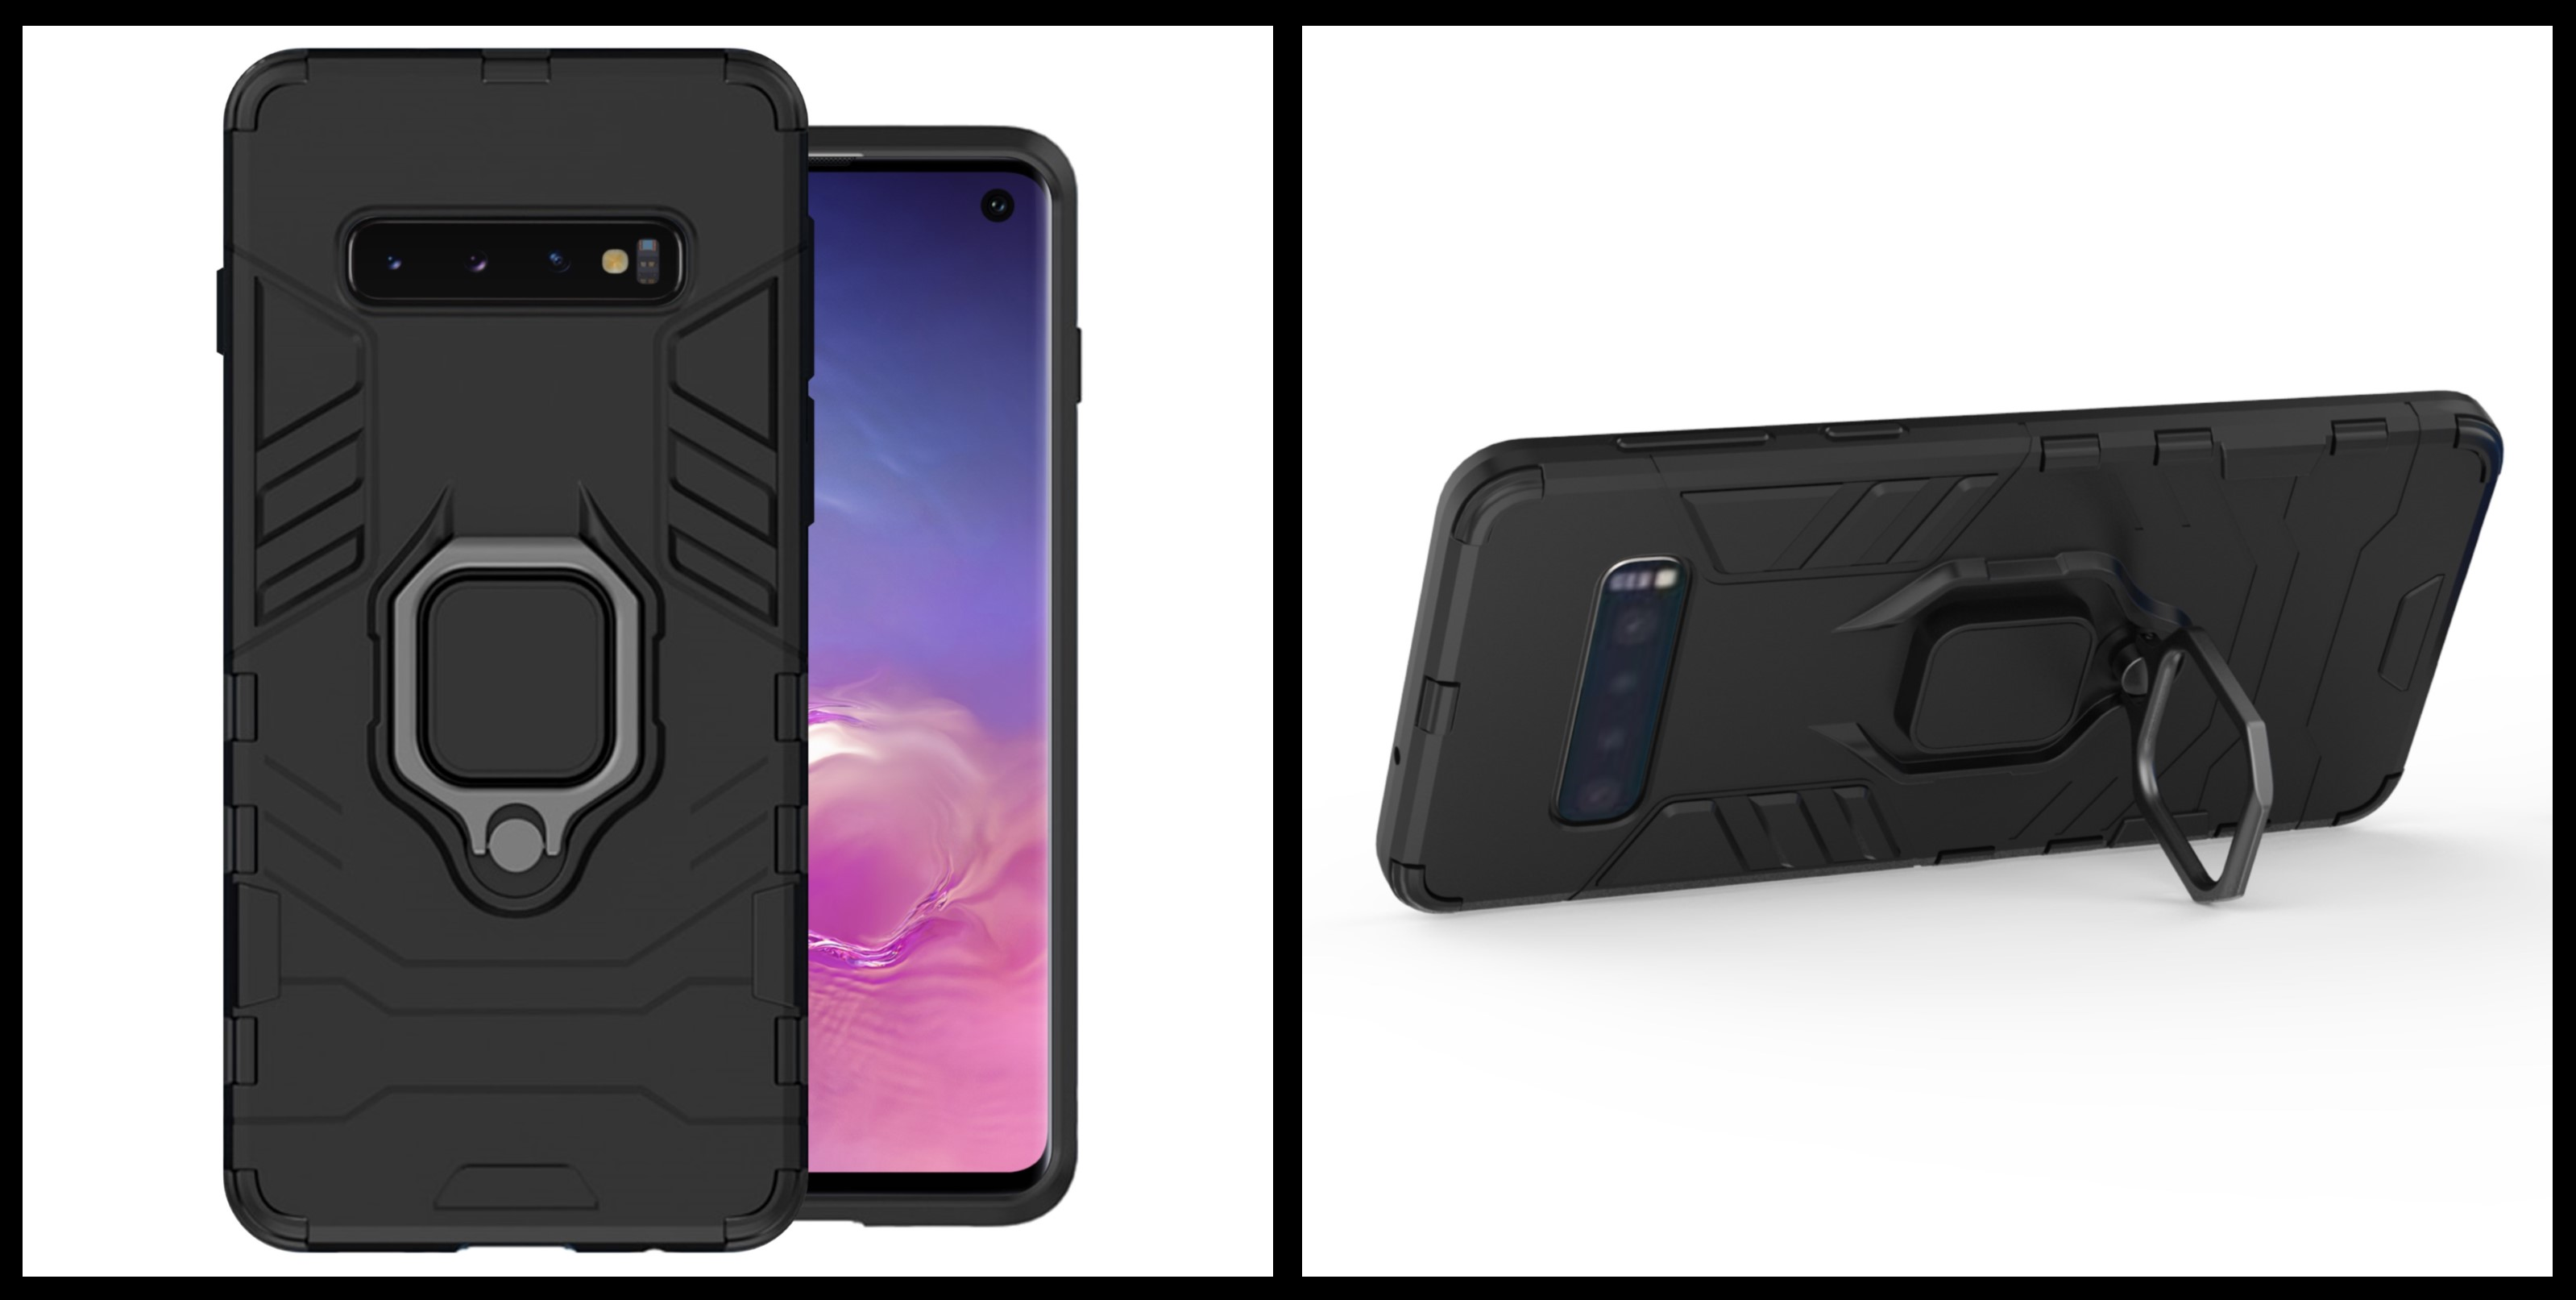 noziroh tank samsung galaxy s10 cover case silicone military design shockproof black